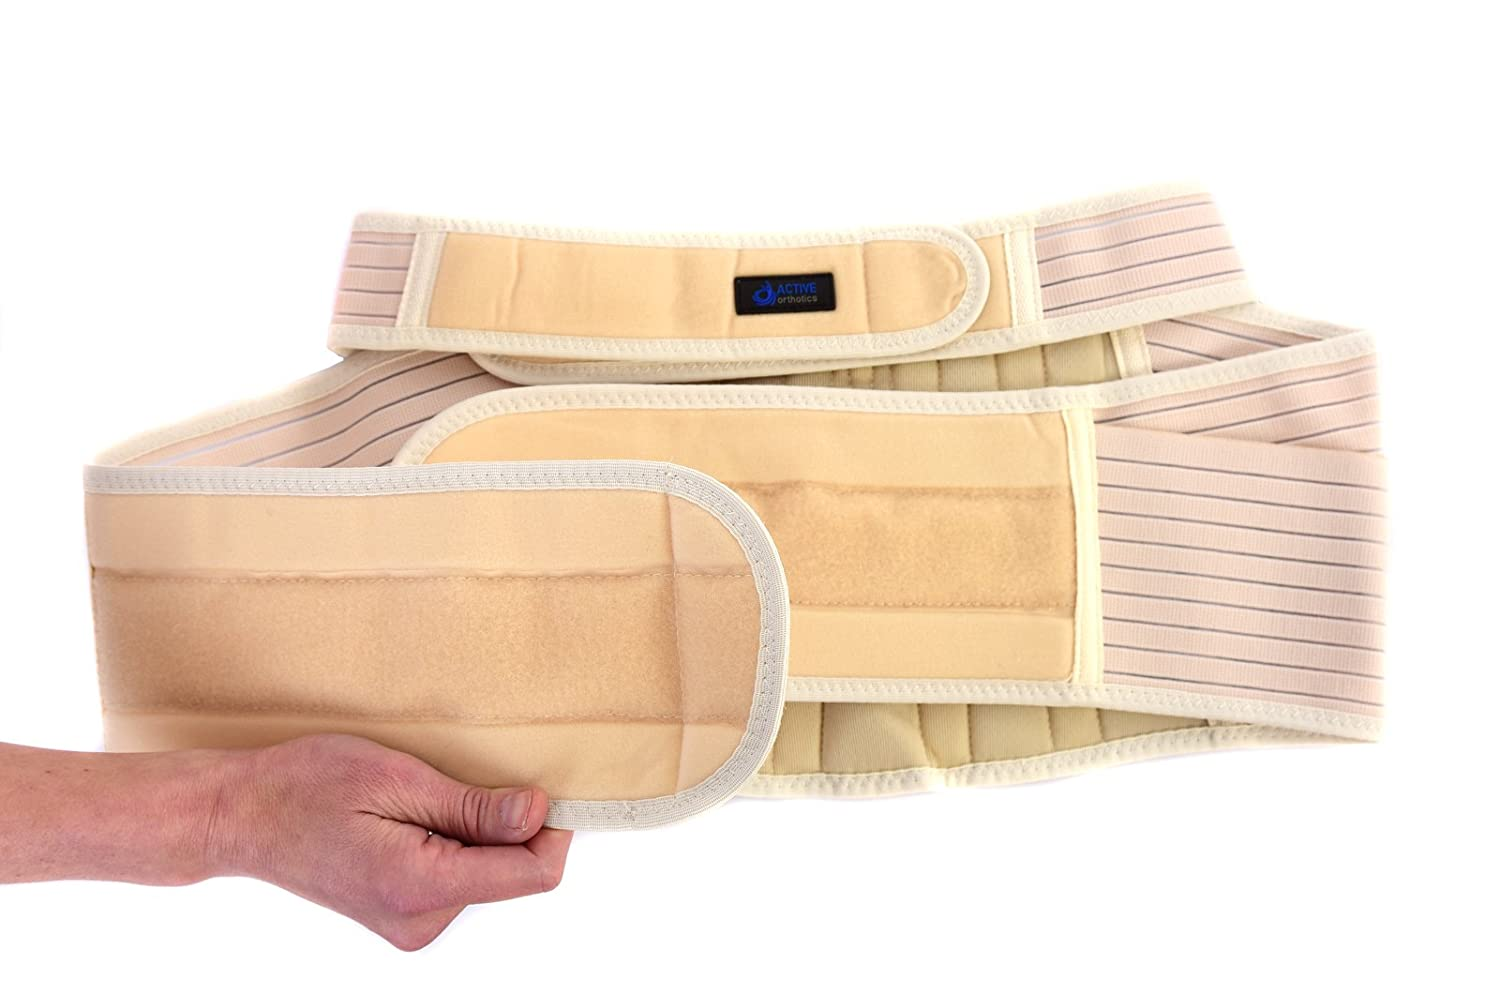 Active Orthotics Superior Double strap Maternity Support belt back posture support all sizes